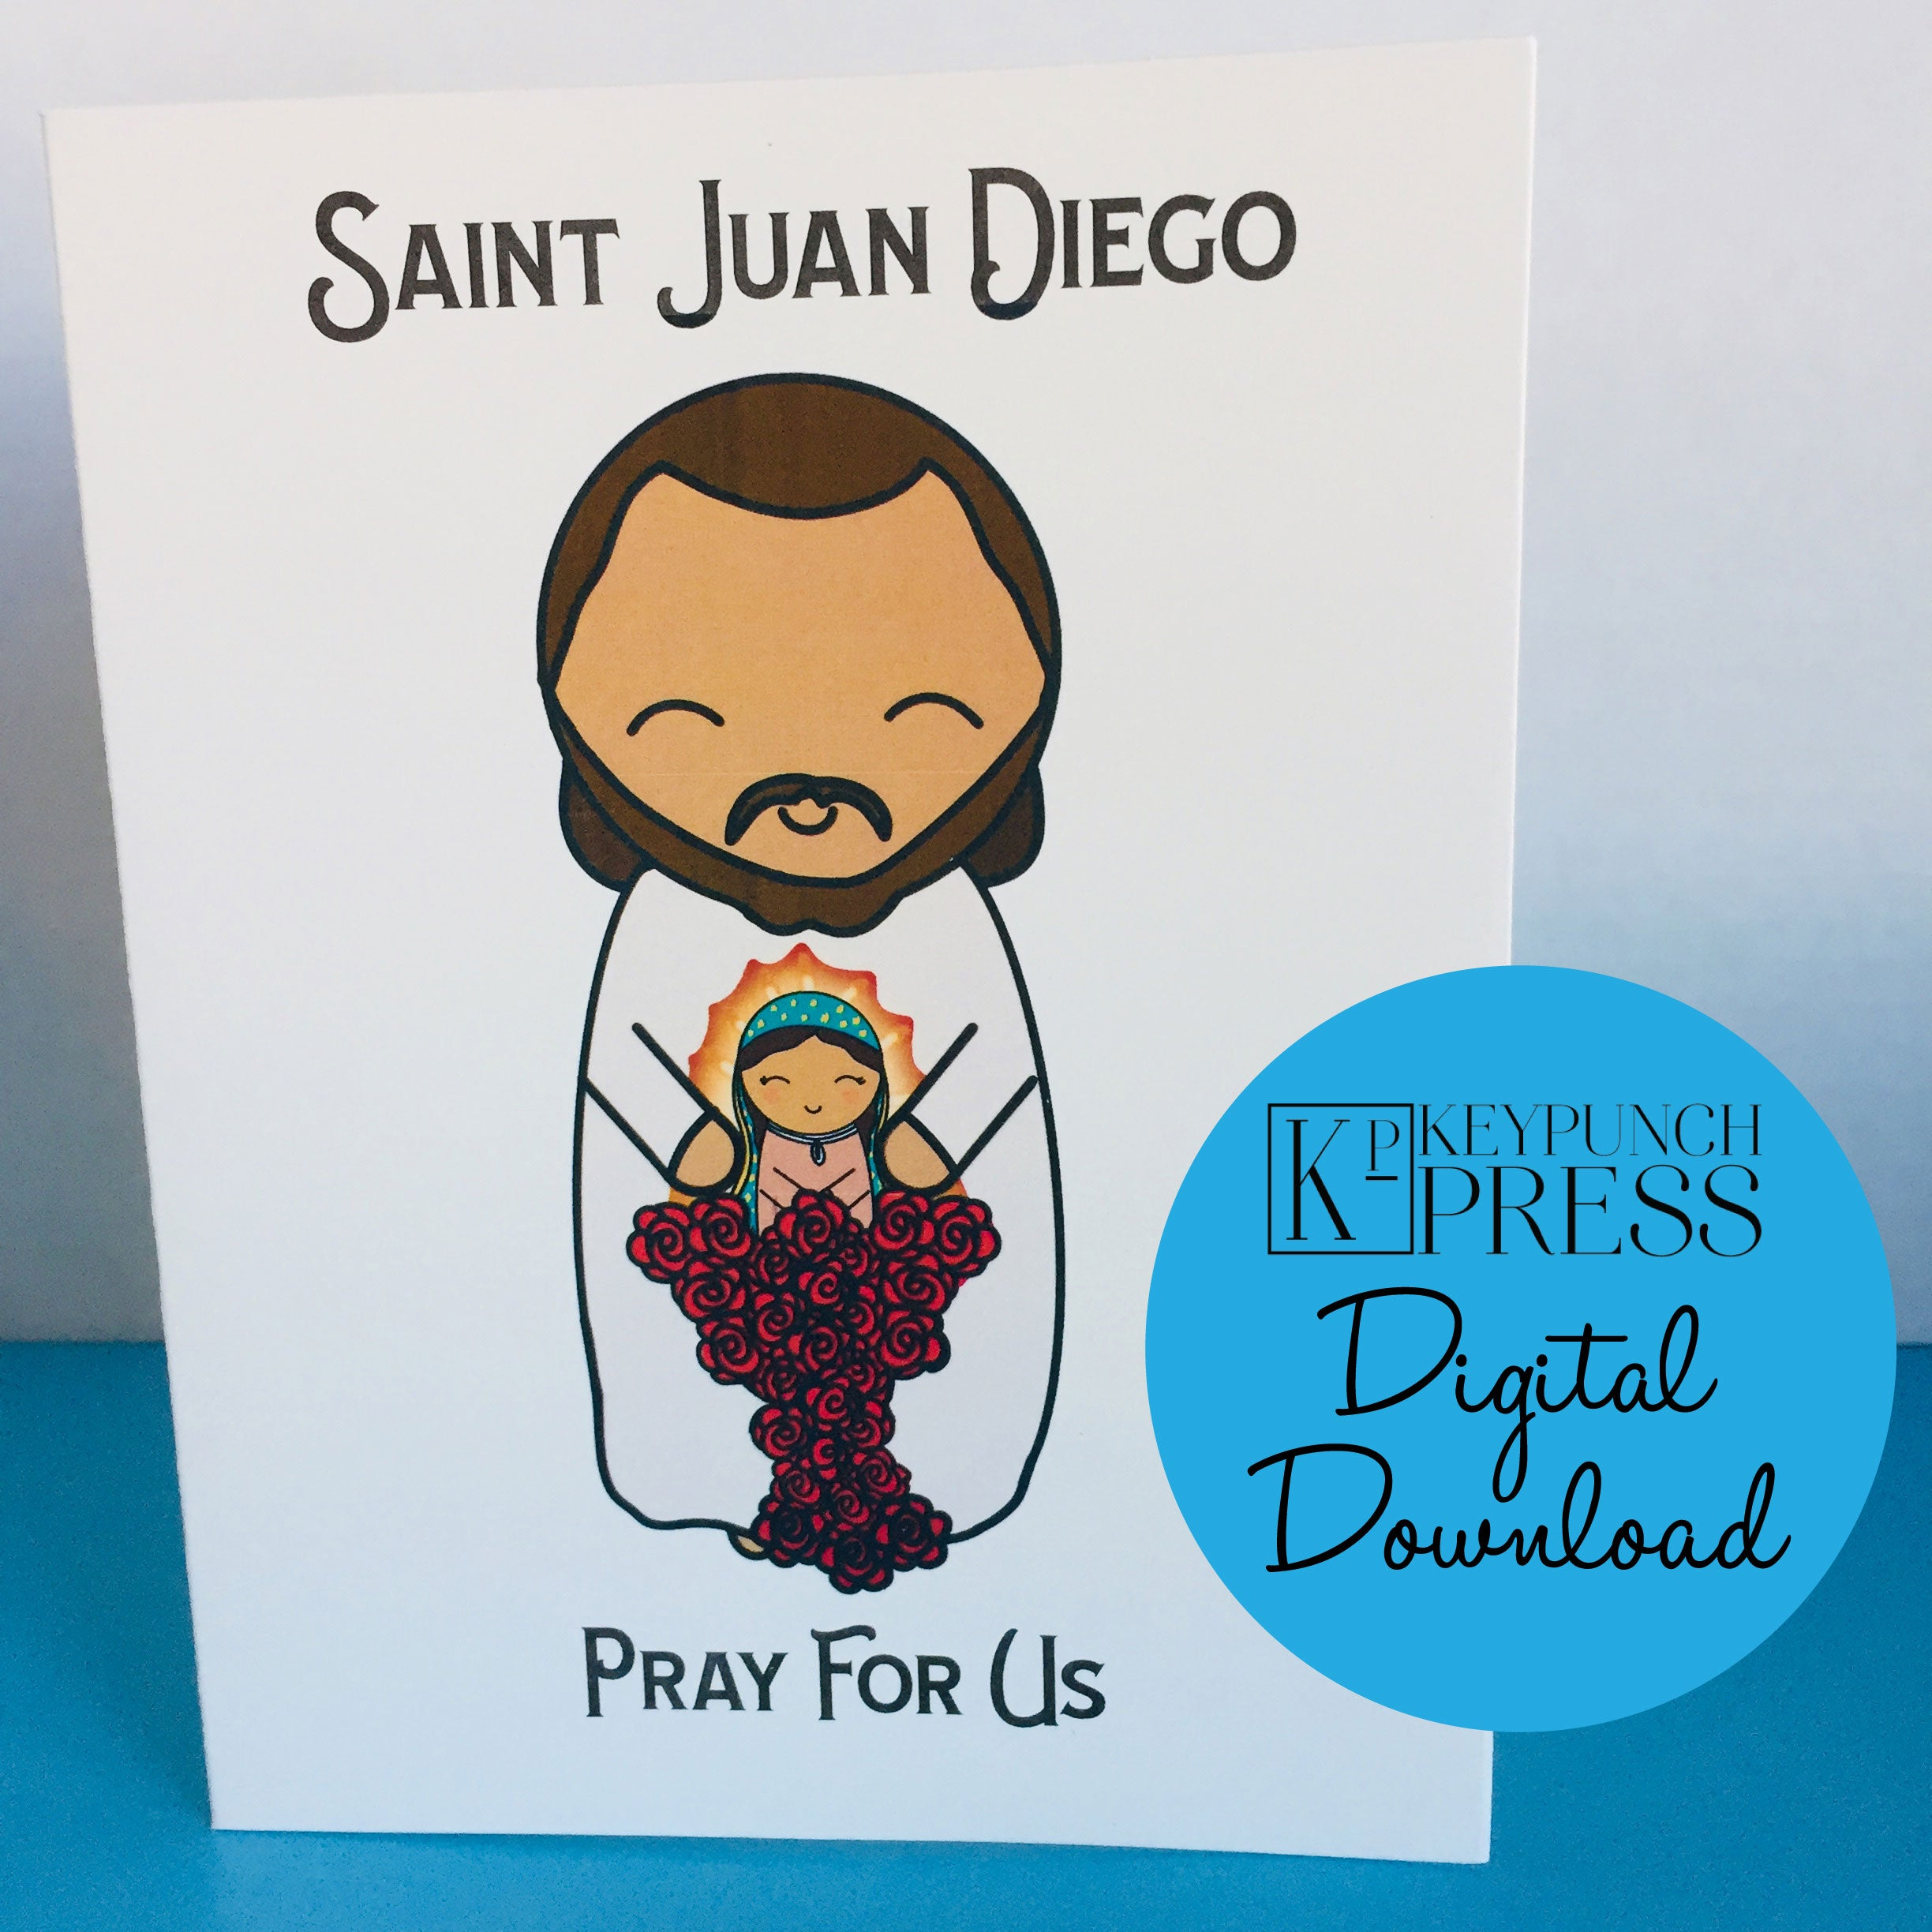 Saint Juan Diego Pray For Us Keypunch Press 5x7 Card Digital Download